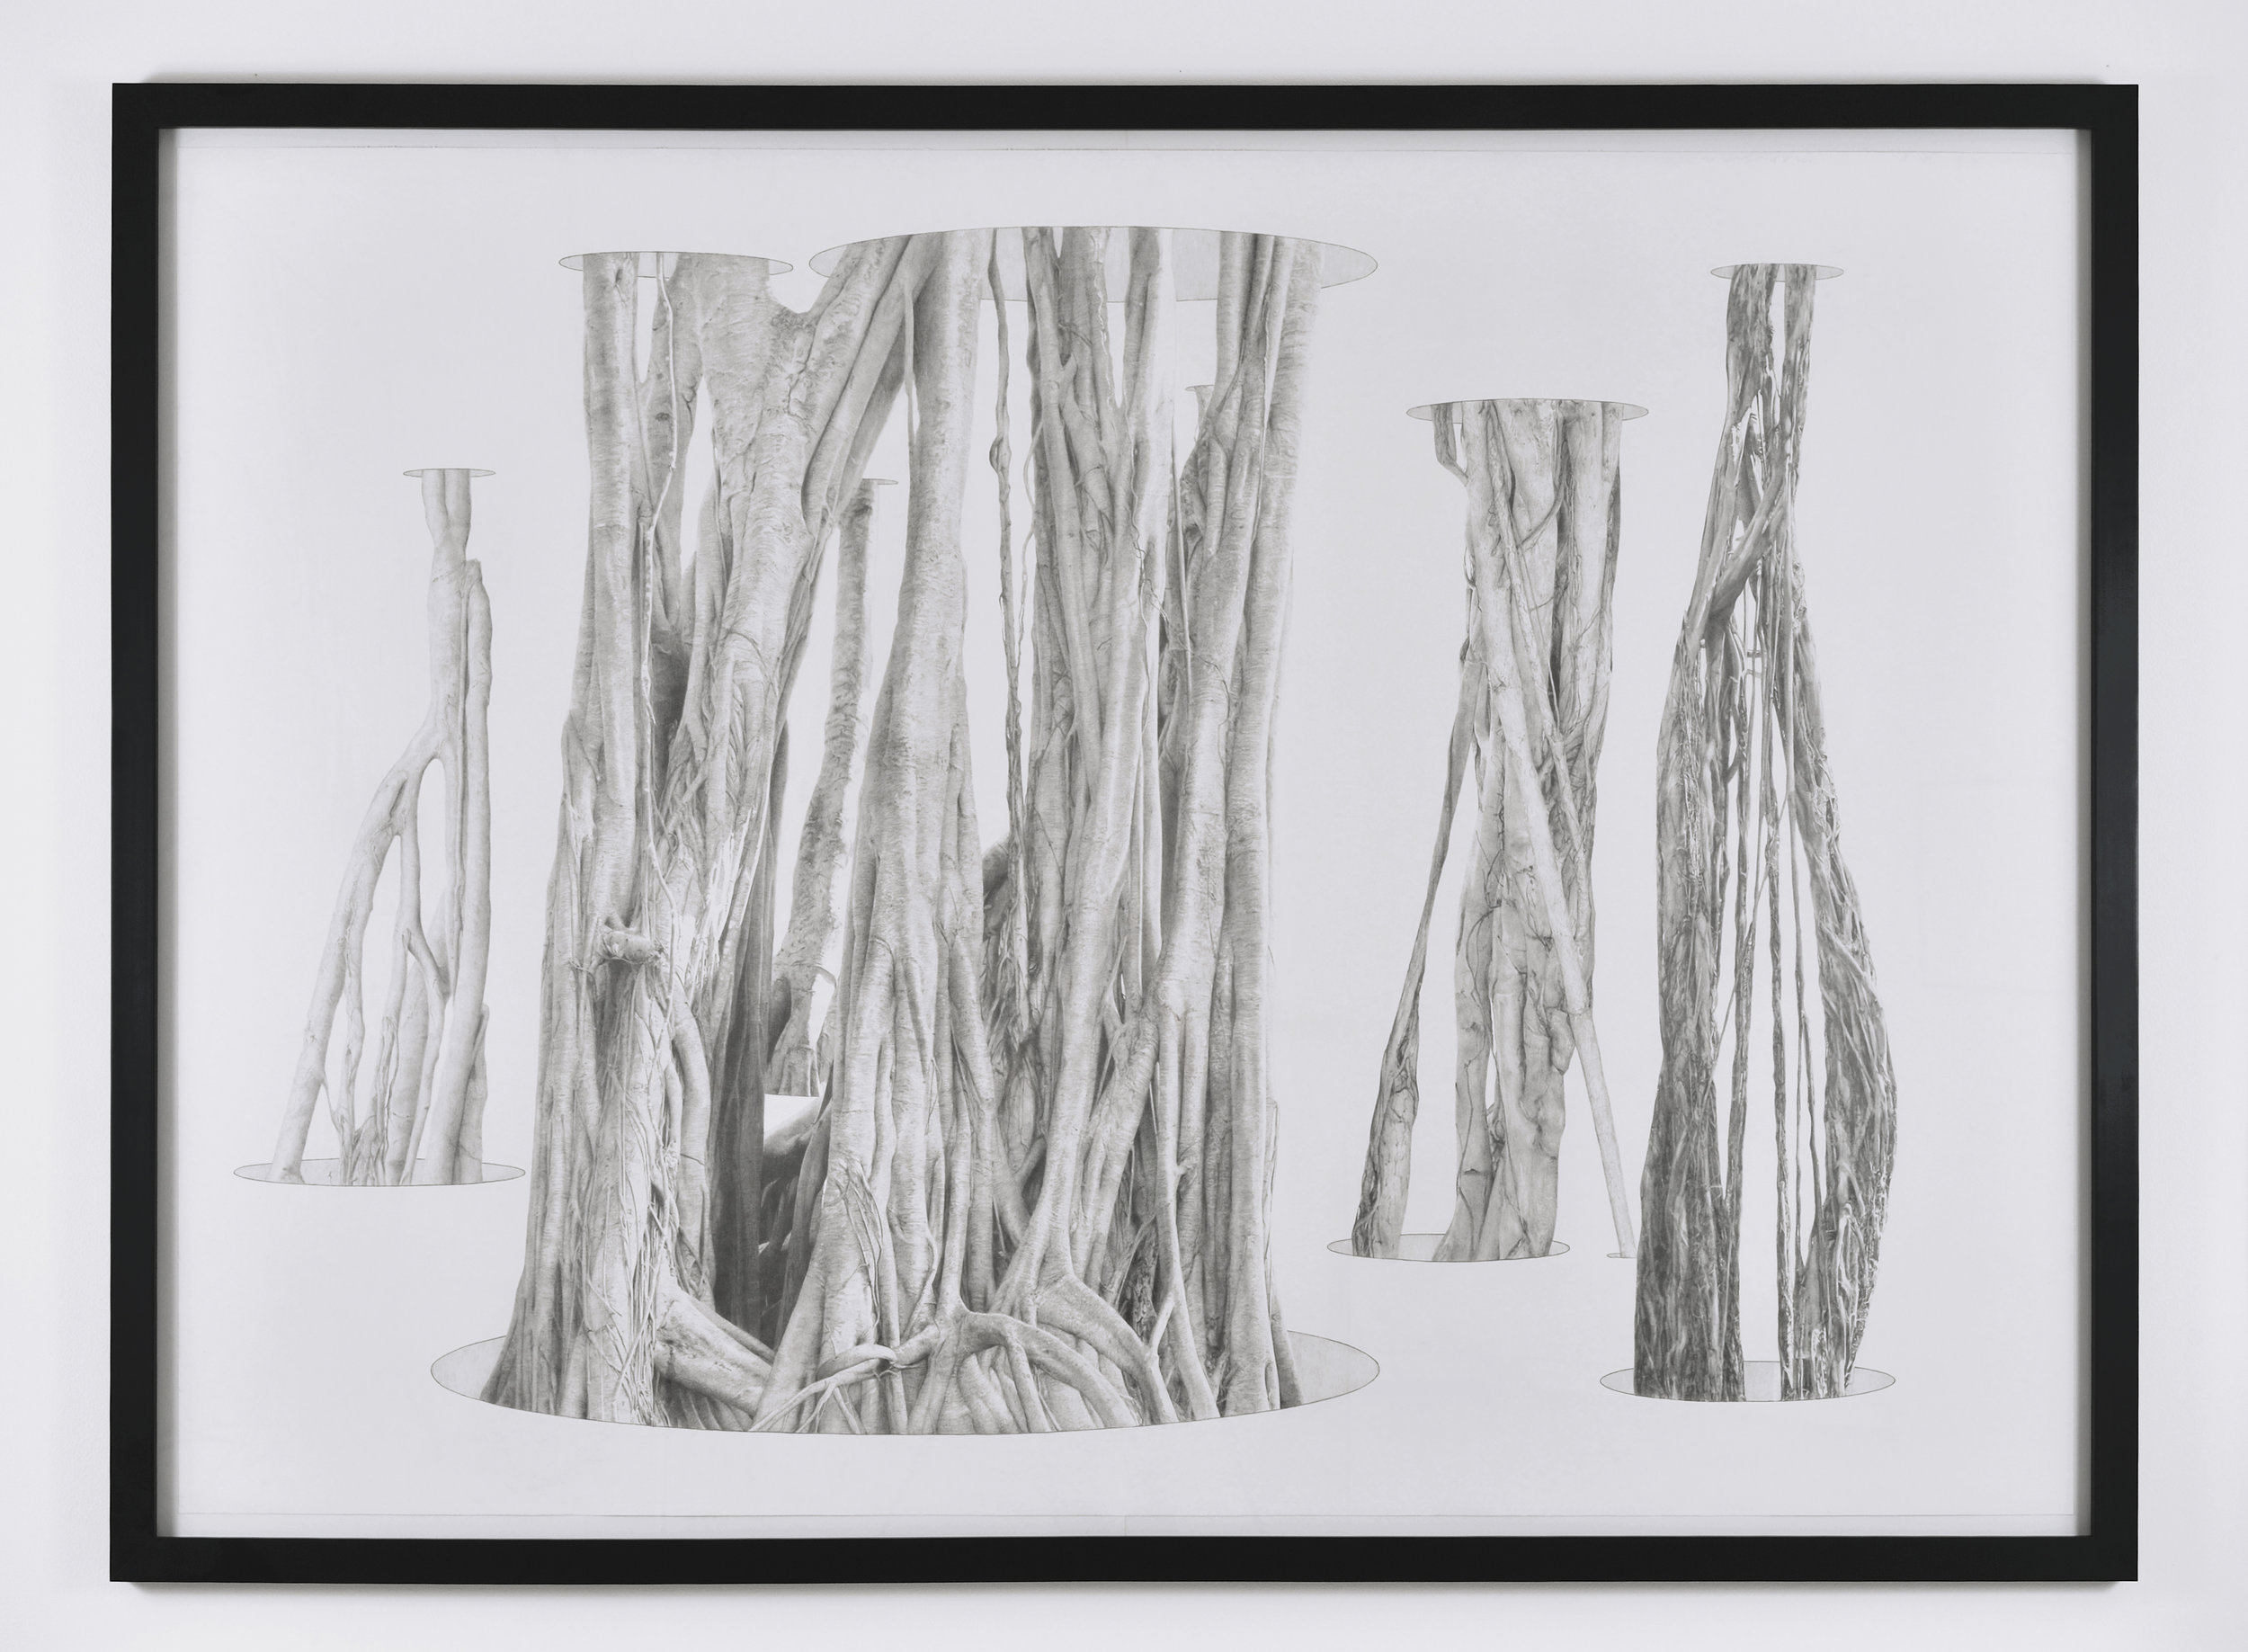 Banyan Tree in Holes, 2011 pencil on paper 128,5 x 176,5 cm - 50 5/8 x 69 1/2 inches